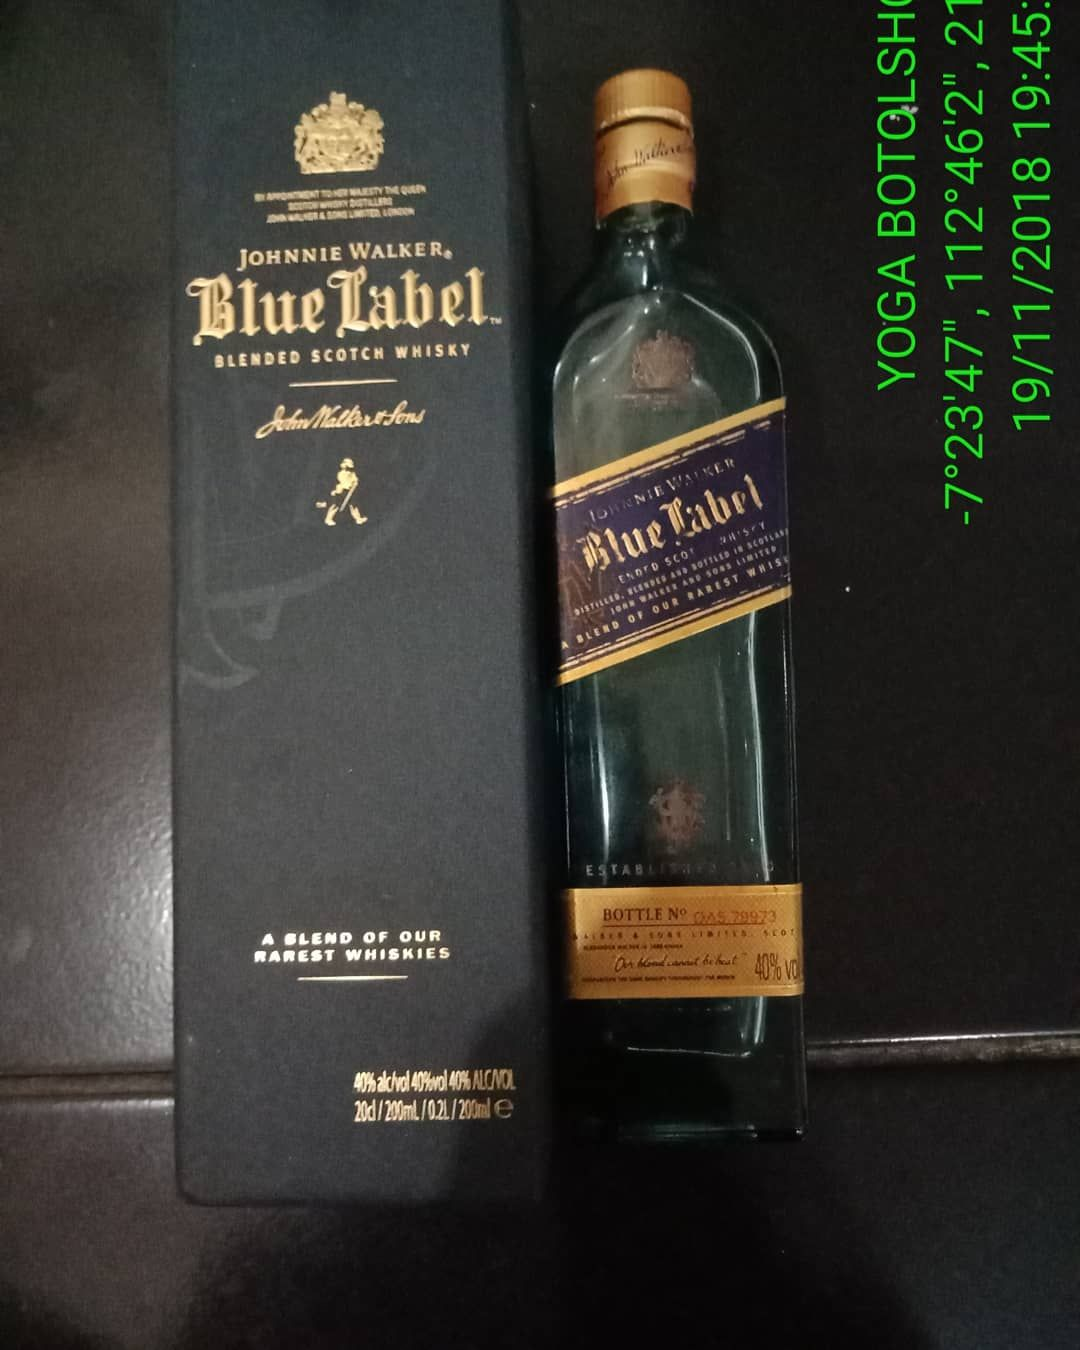 Johnnie Walker Blue Label 200 Ml Botol Minuman Keras Minuman